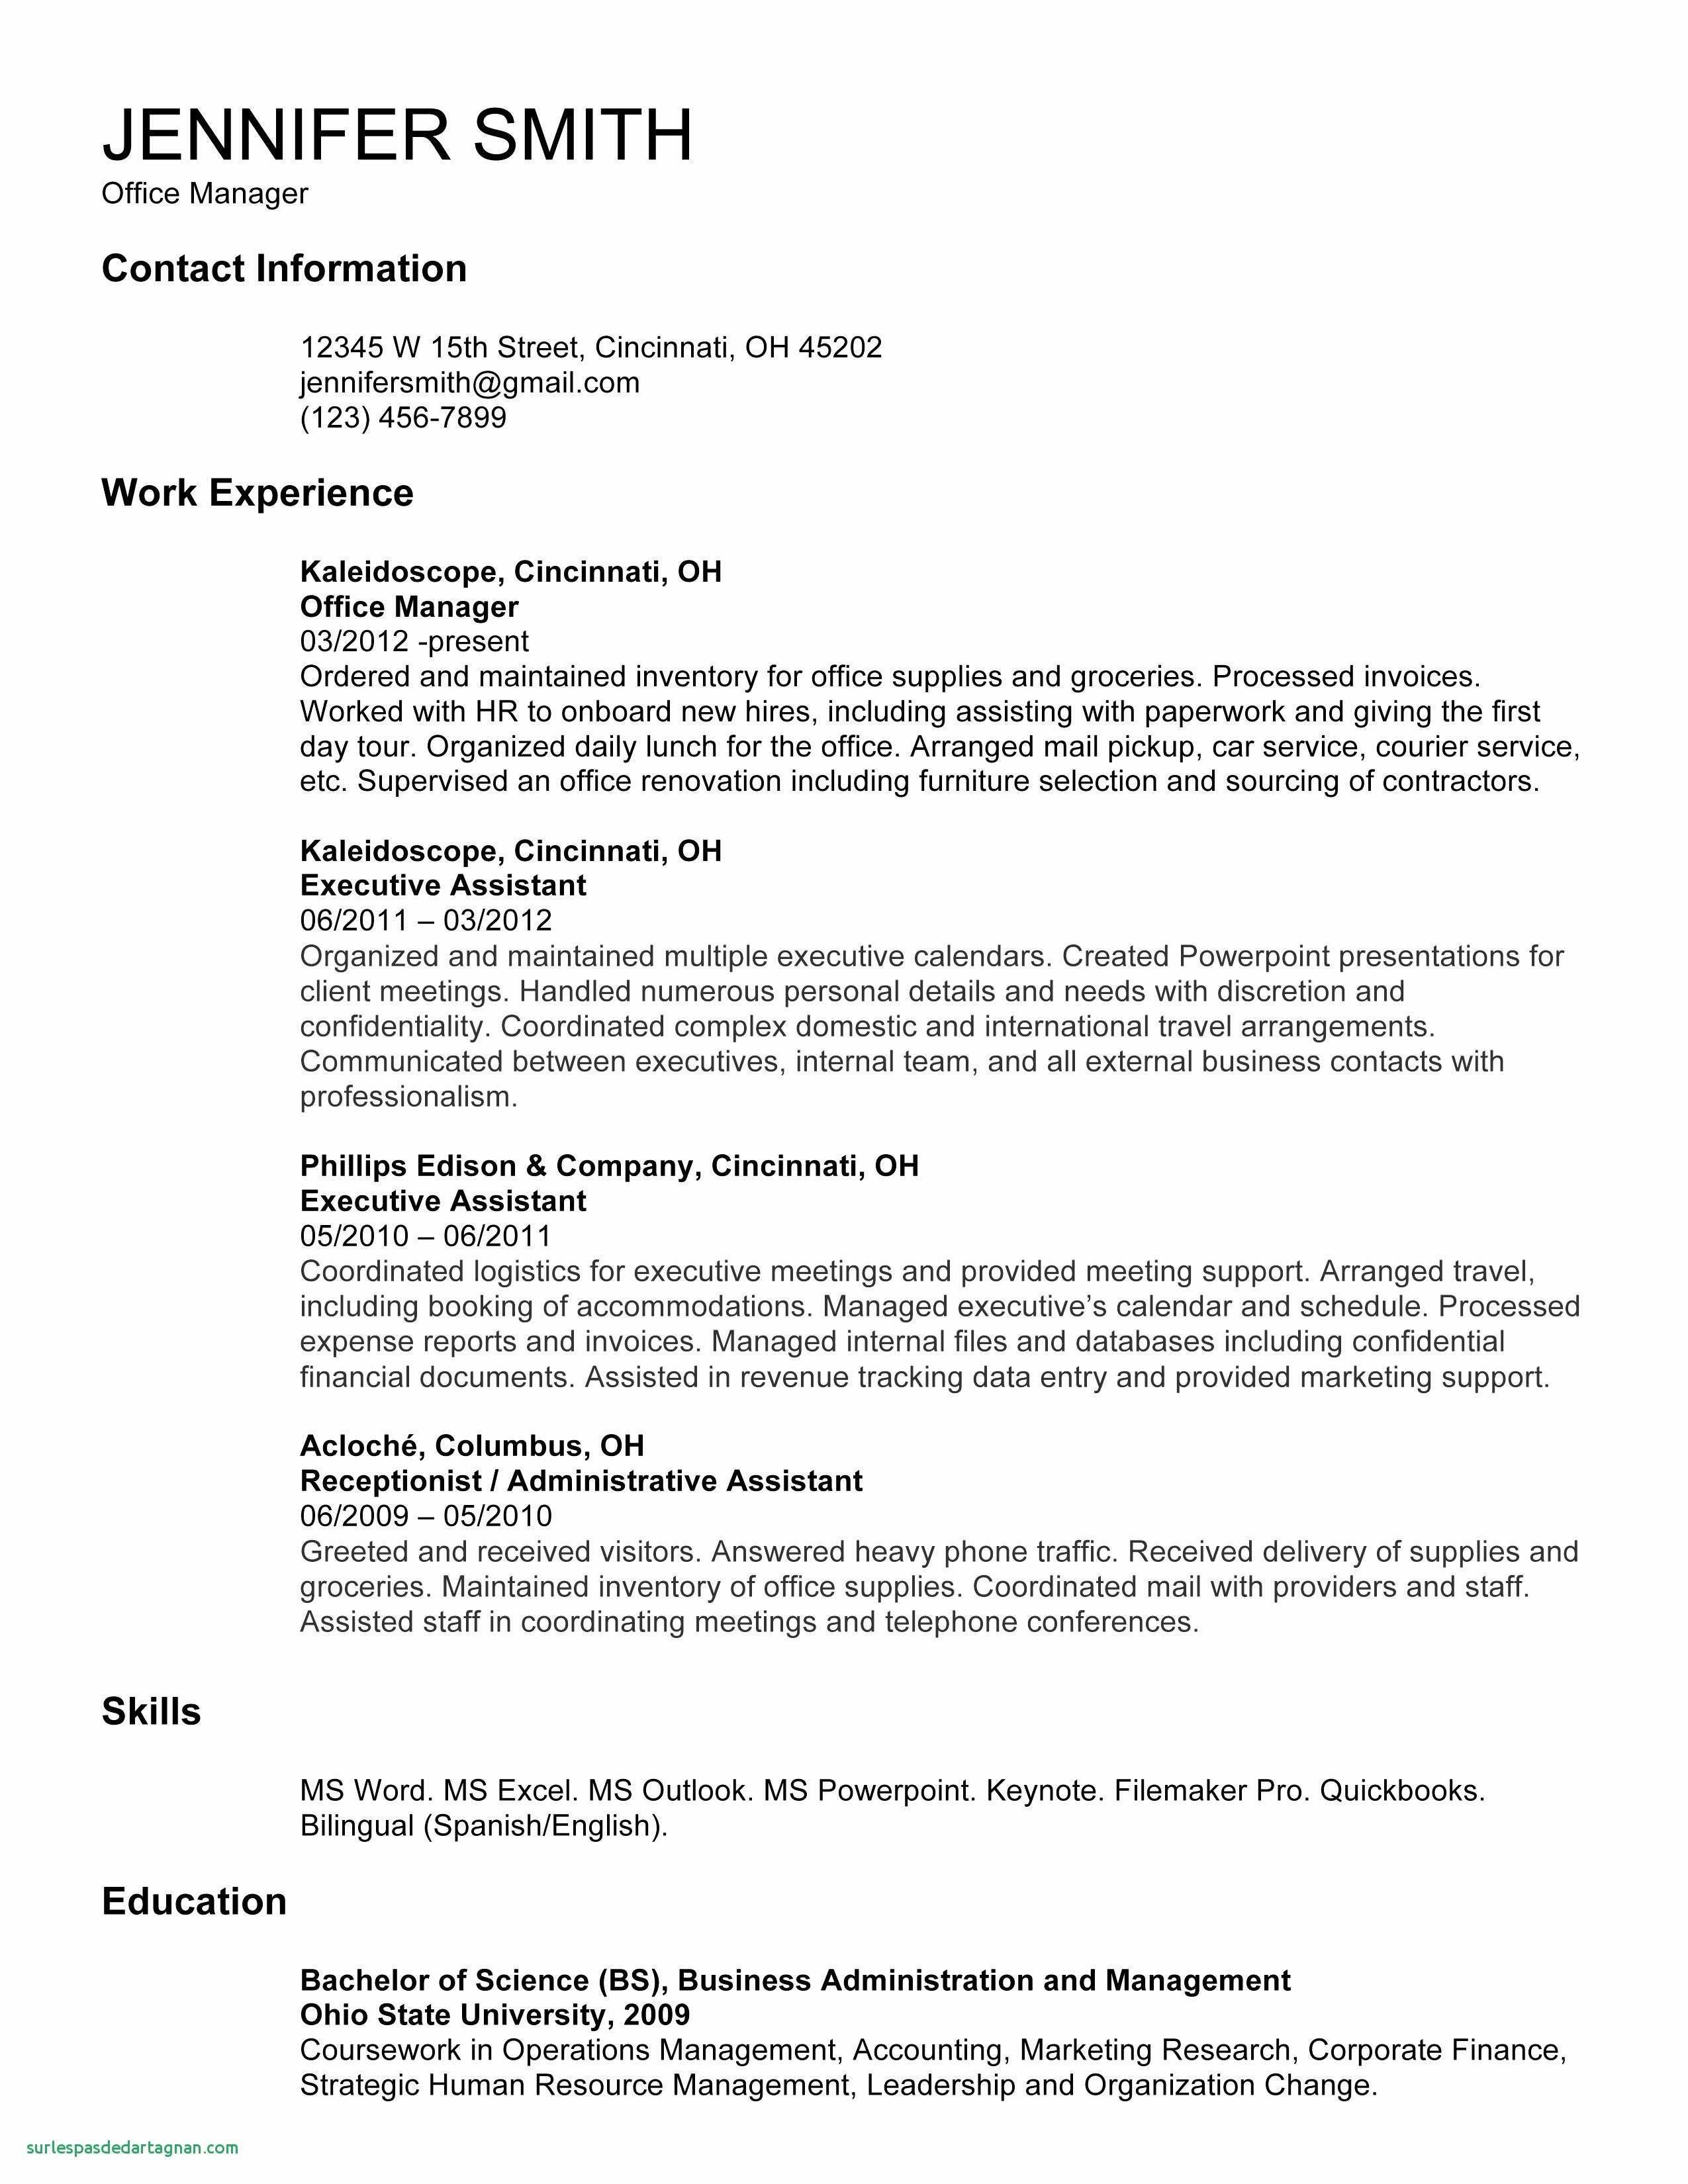 corporate resume Collection-Resume Template Download Free Unique ¢Ë†Å¡ Resume Template Download Free Luxury Empty Resume 0d Archives 16-j